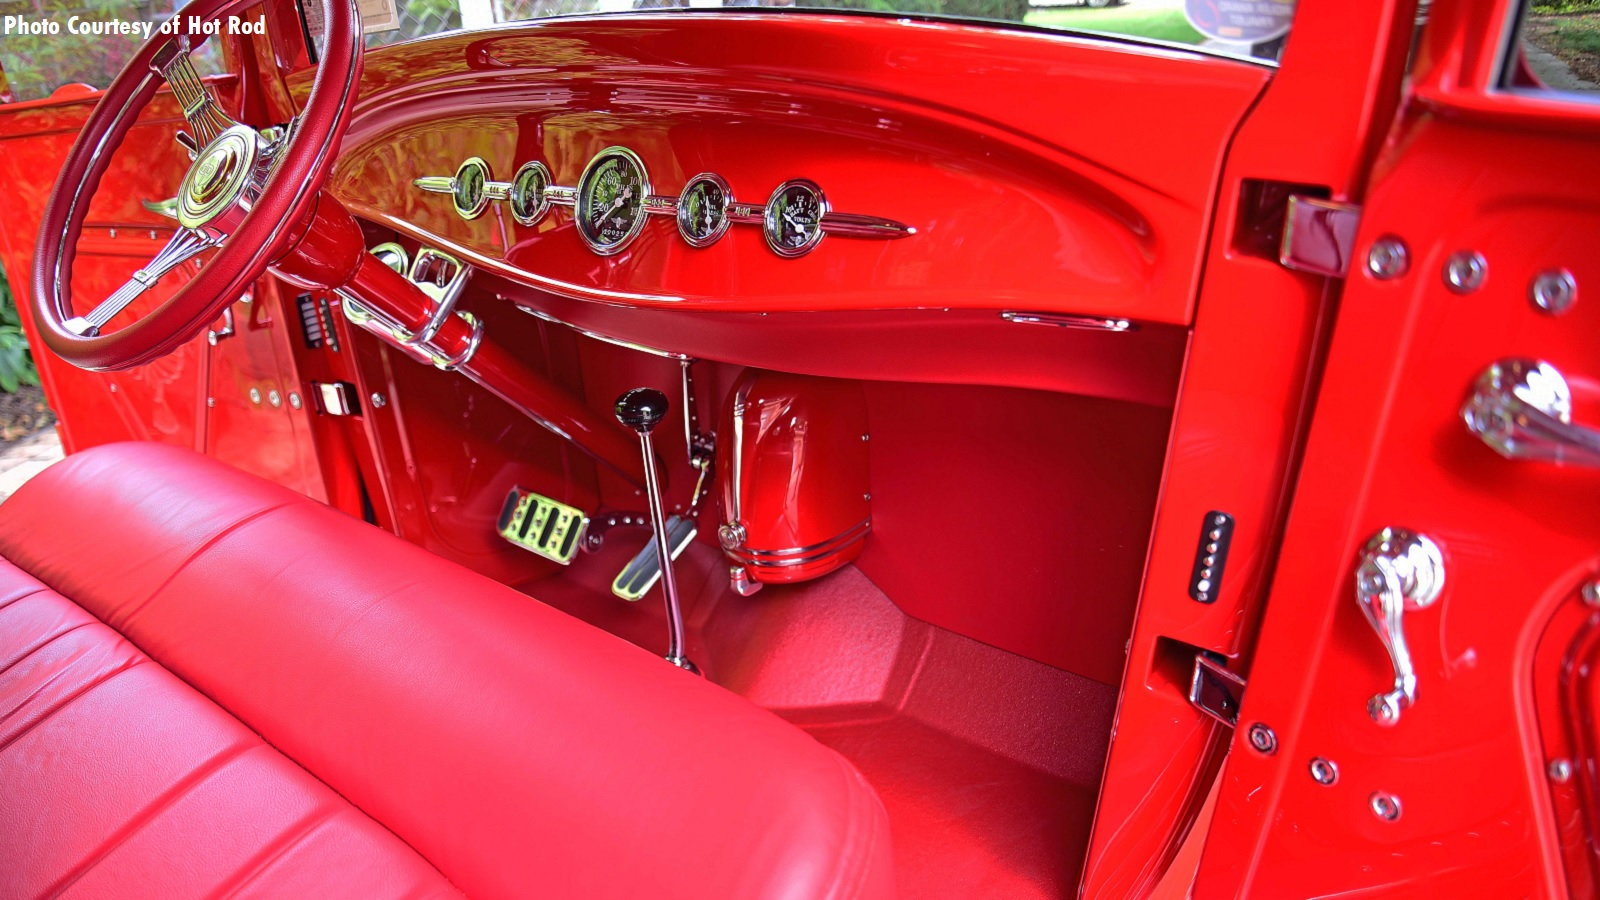 Fiery Red 1929 Ford Pickup